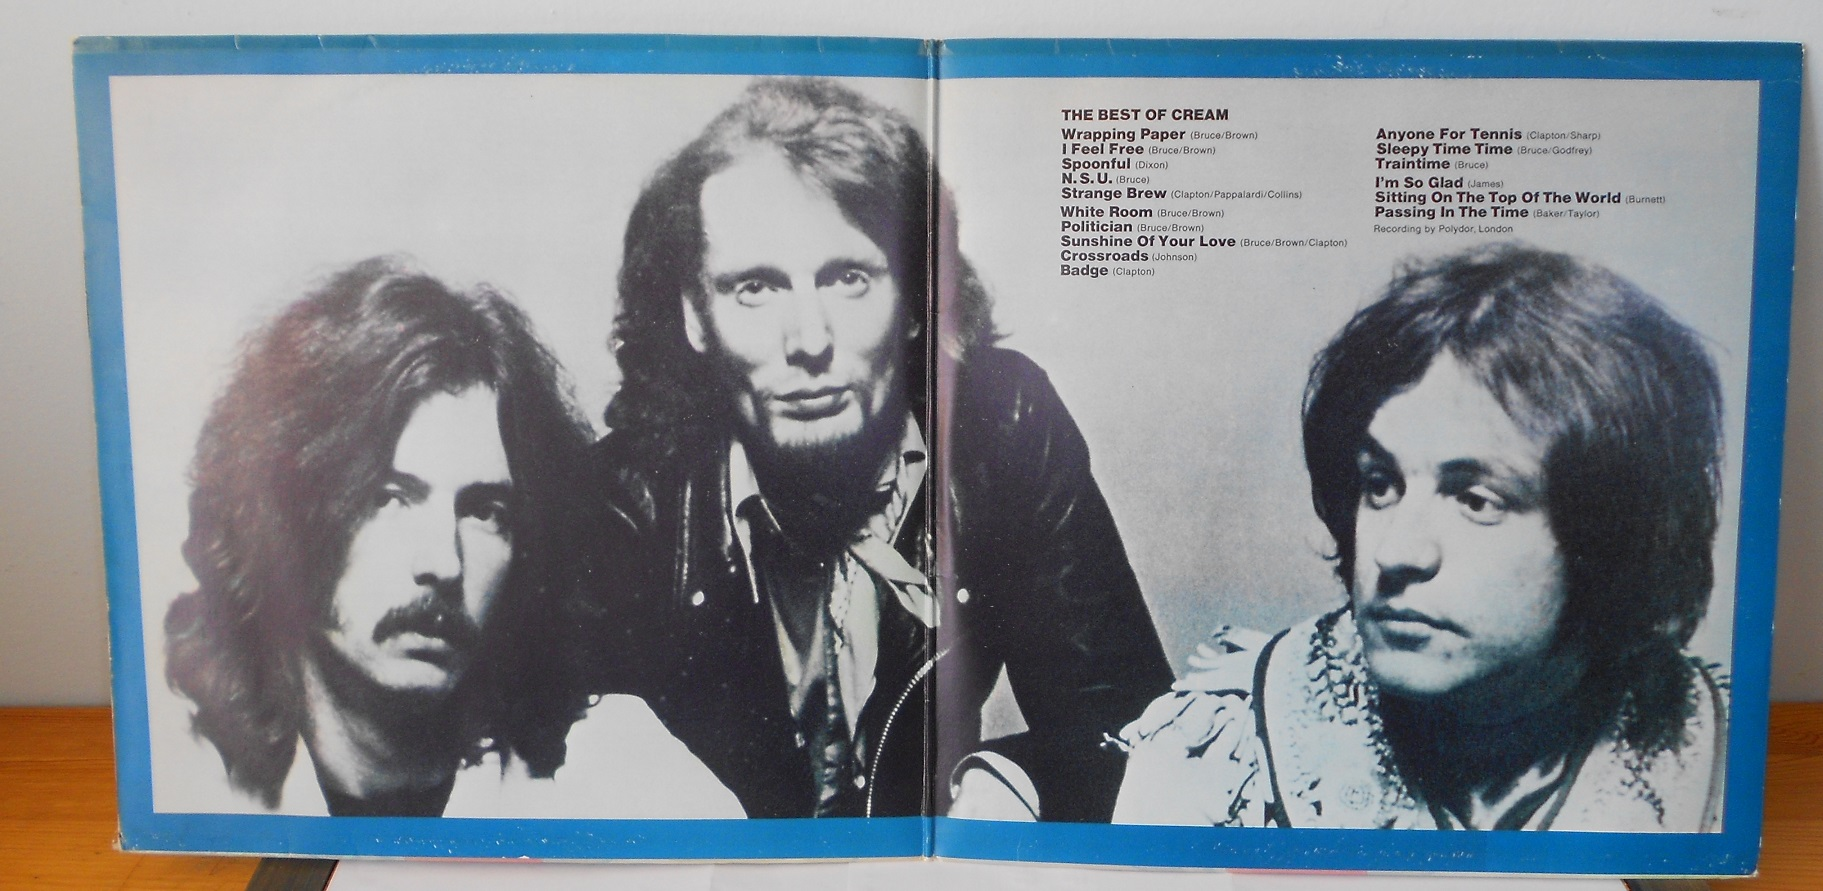 Cream - The Best Of Cream (2LP Karussell)